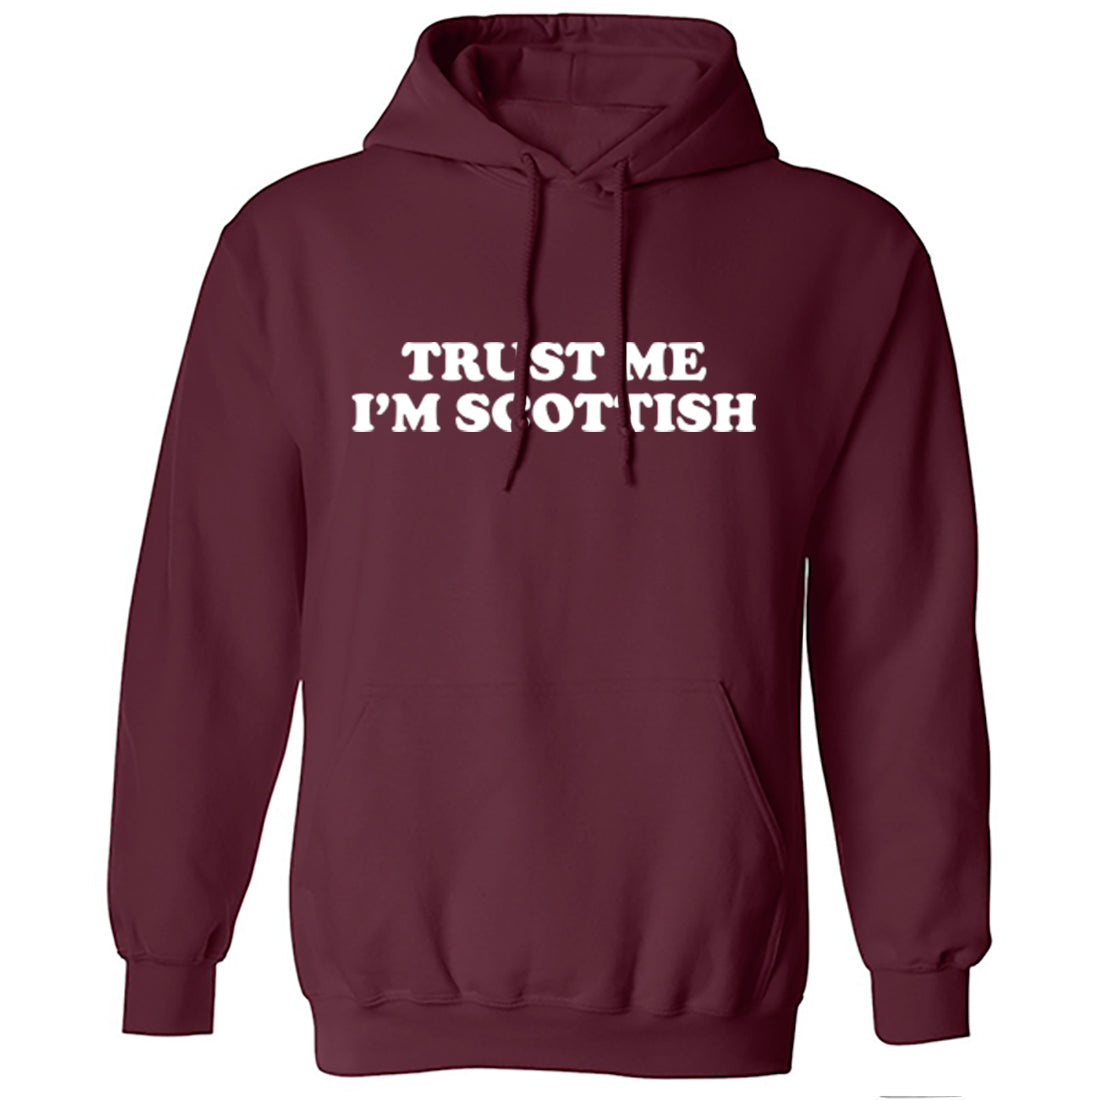 Trust Me I'm Scottish Unisex Hoodie K1996 - Illustrated Identity Ltd.